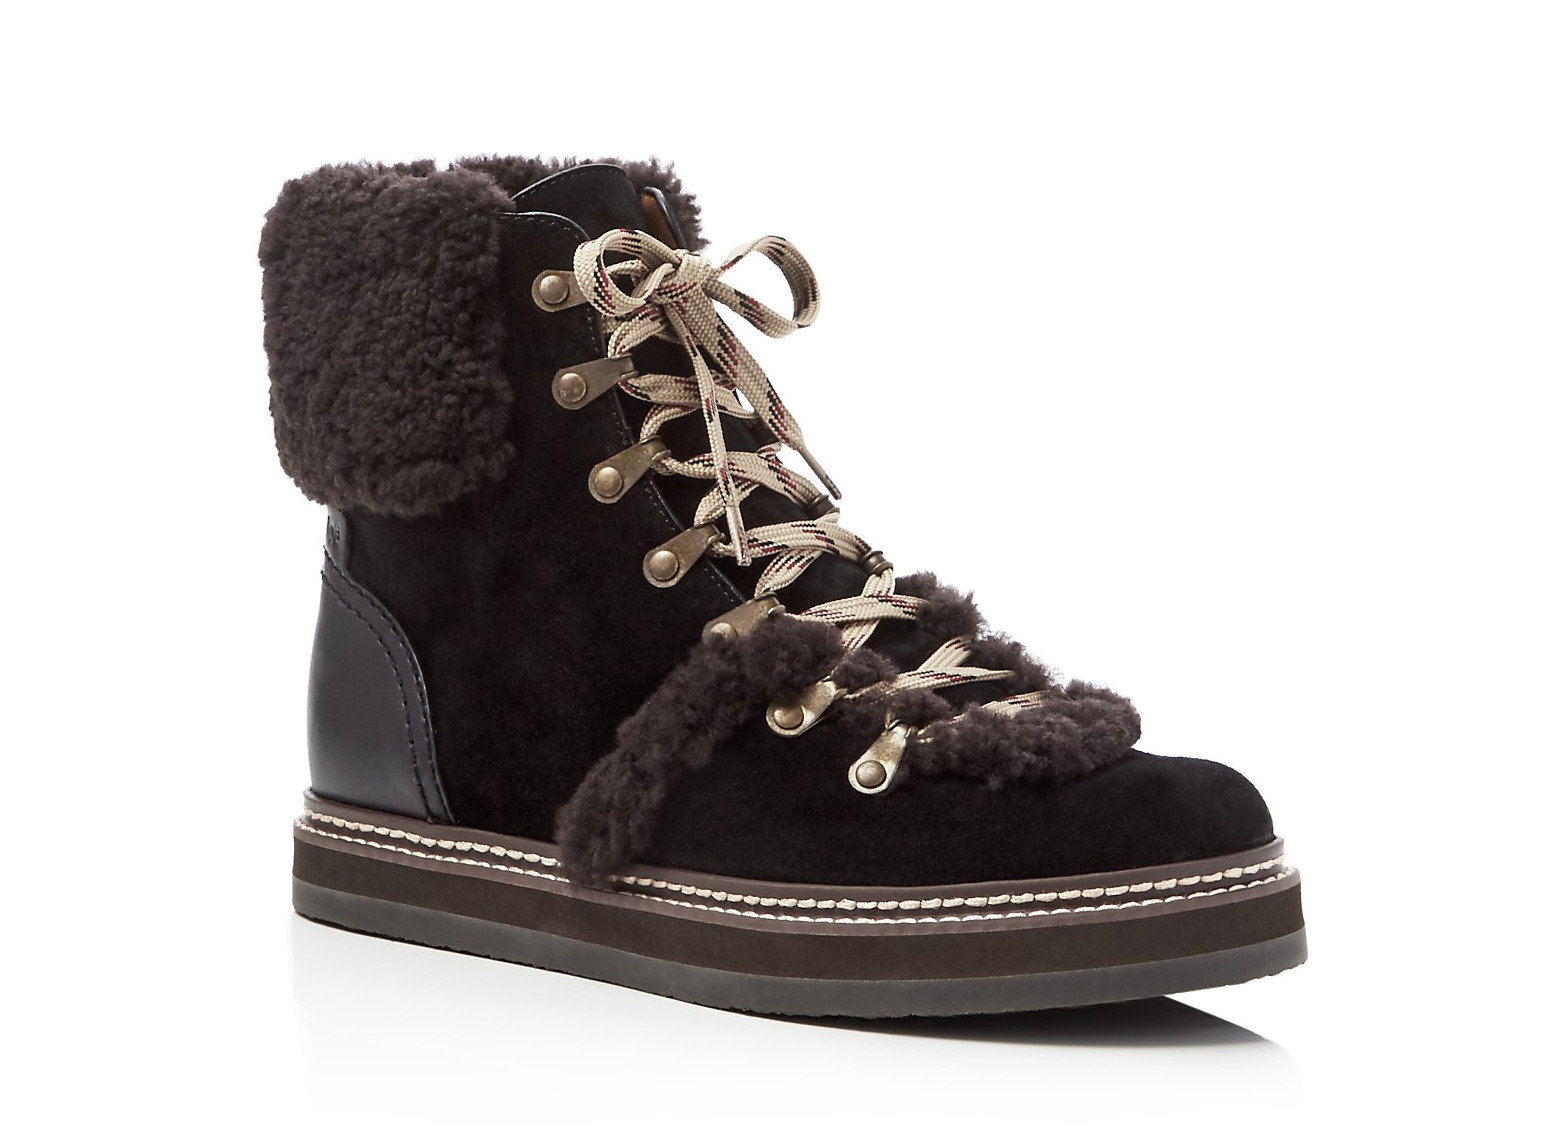 Style + Design Travel Shop footwear shoe boot brown suede snow boot product shoes leather walking shoe outdoor shoe feet